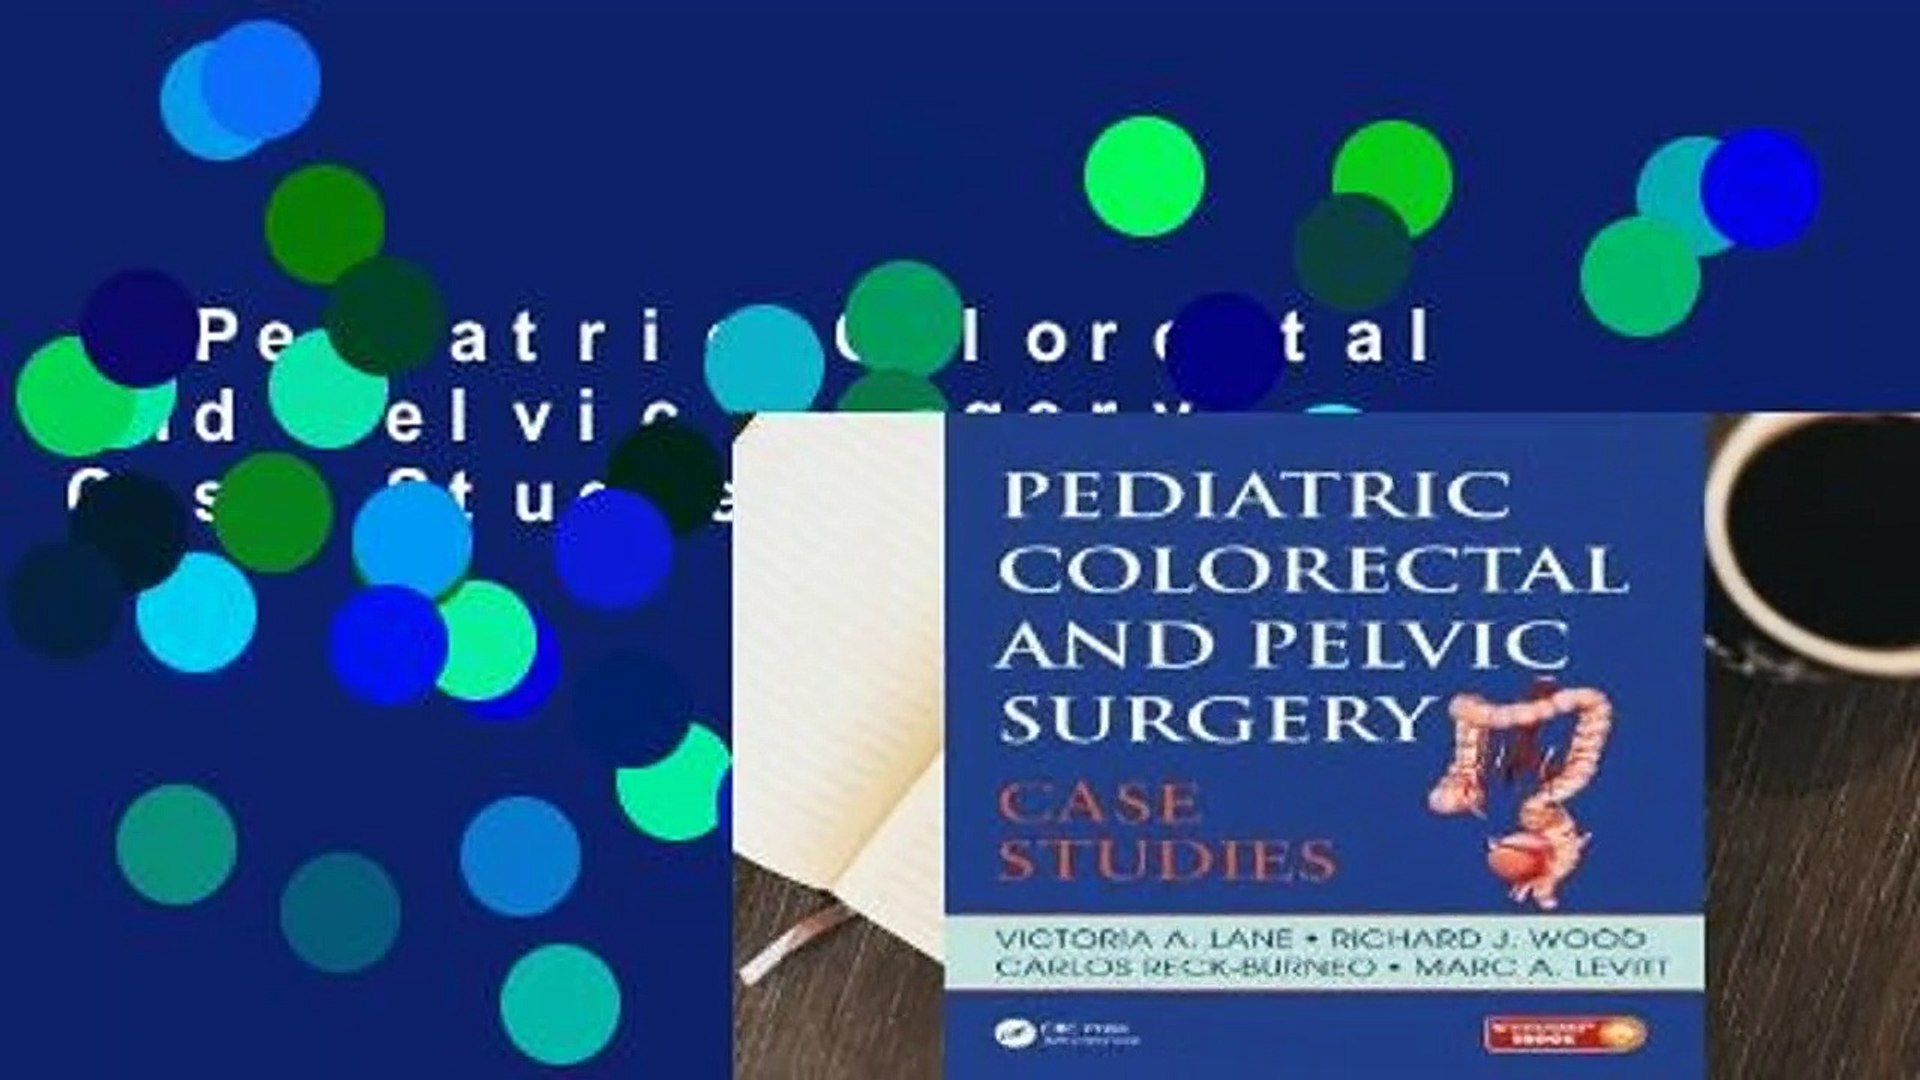 Pediatric Colorectal and Pelvic Surgery: Case Studies For Kindle